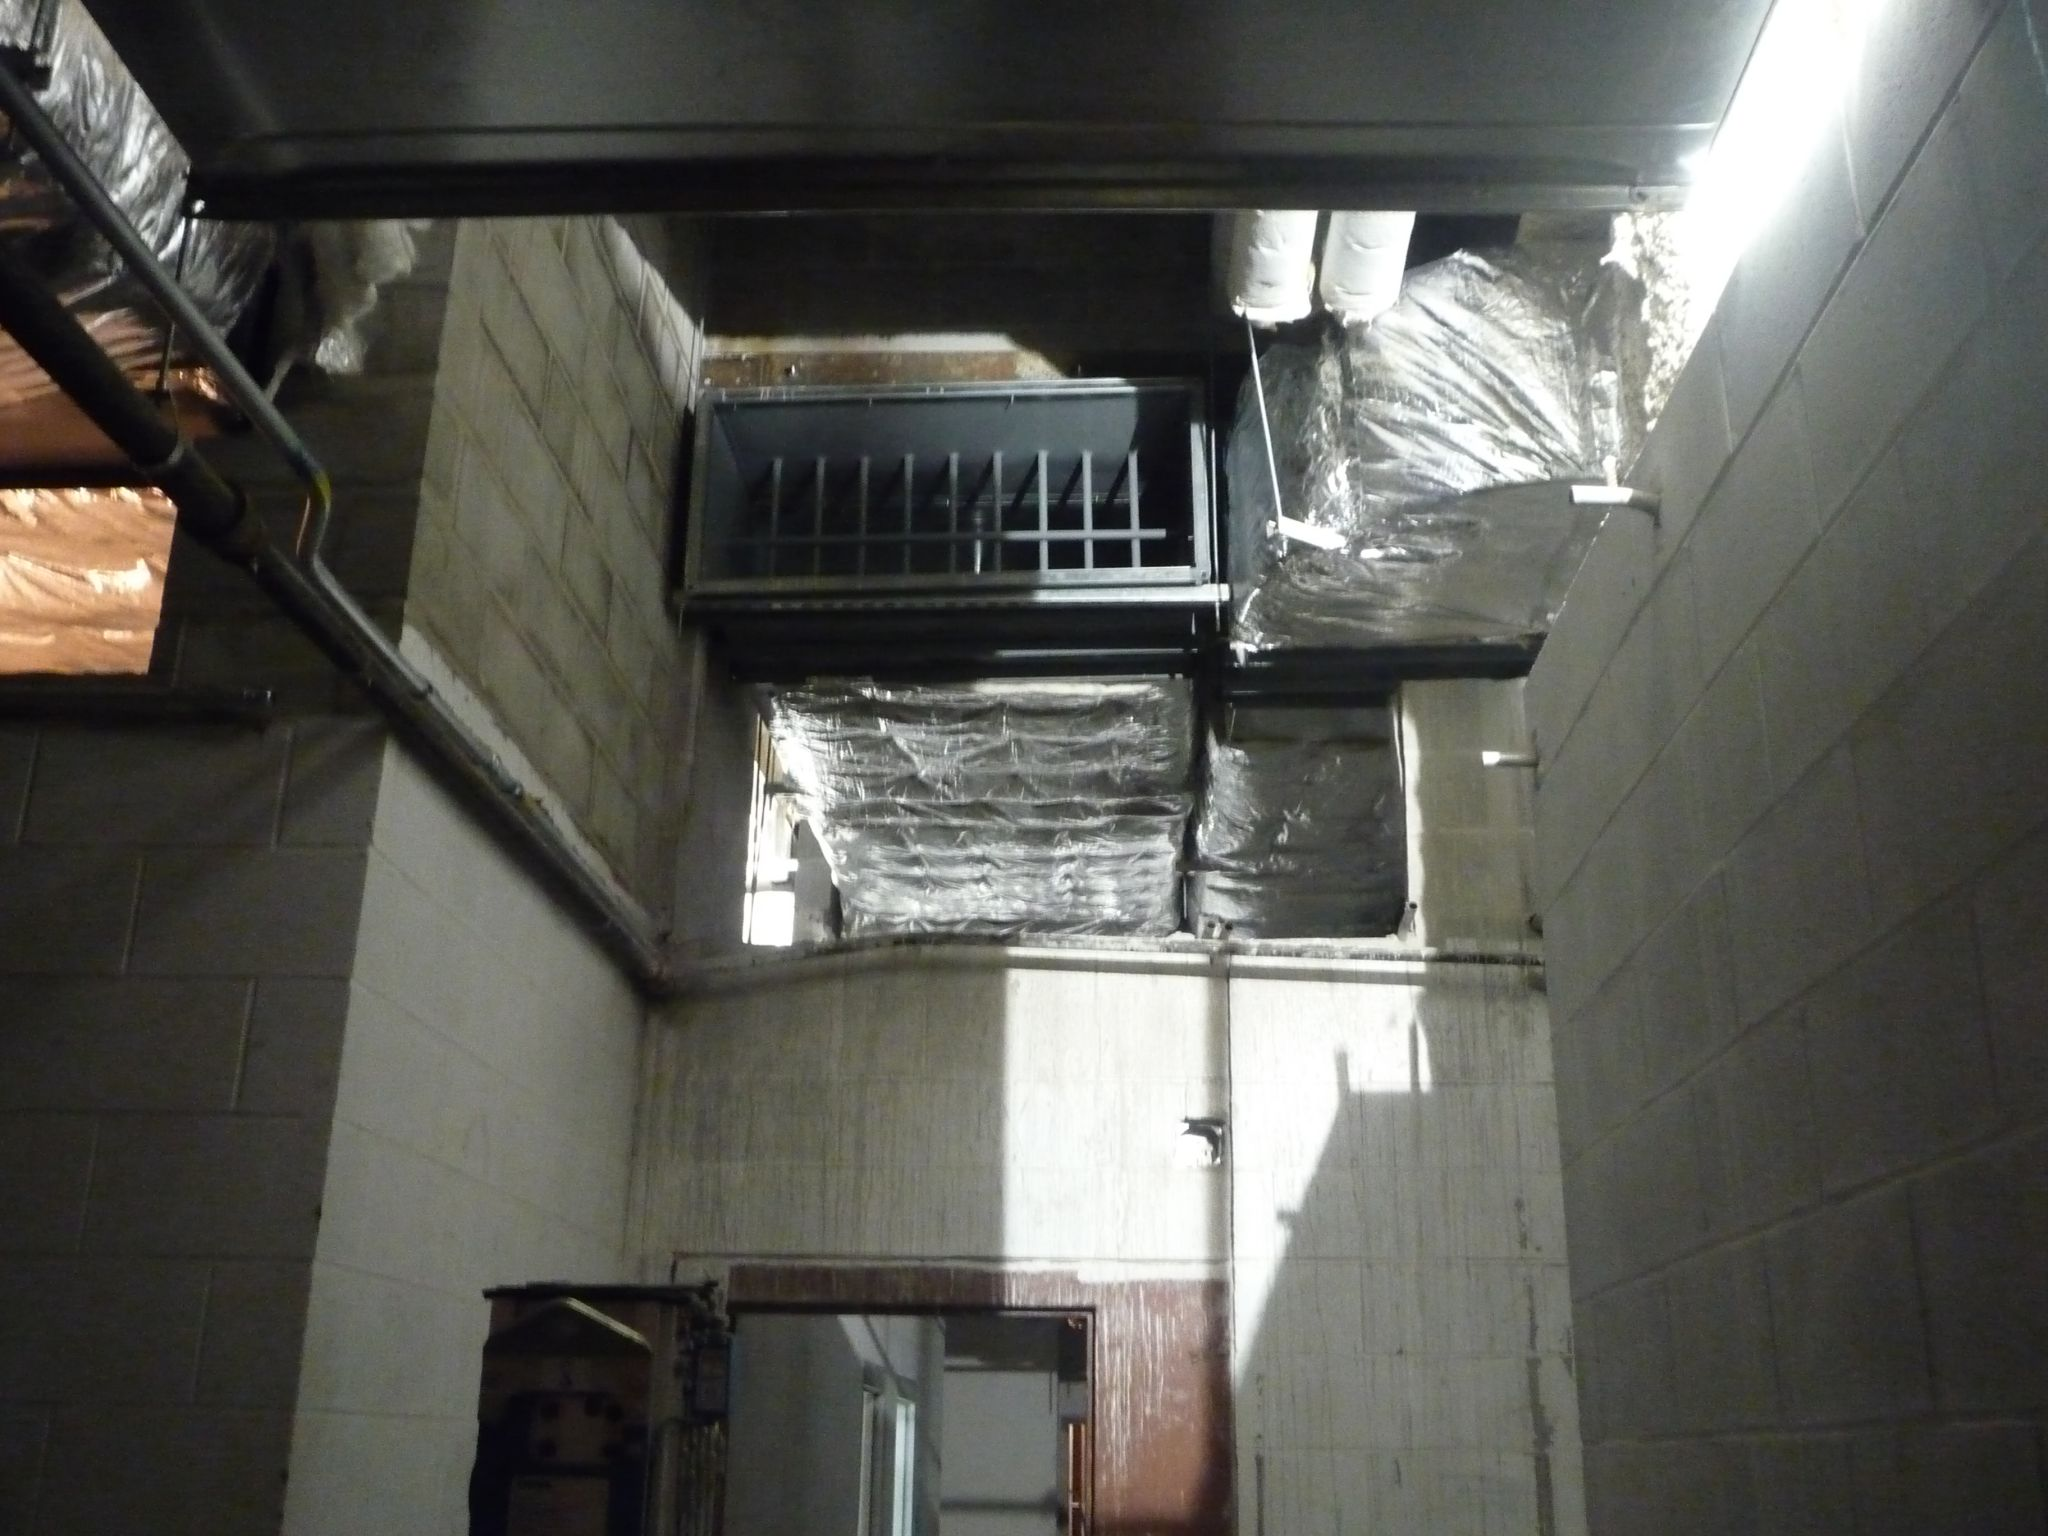 Specifying successful systems for detention facilities